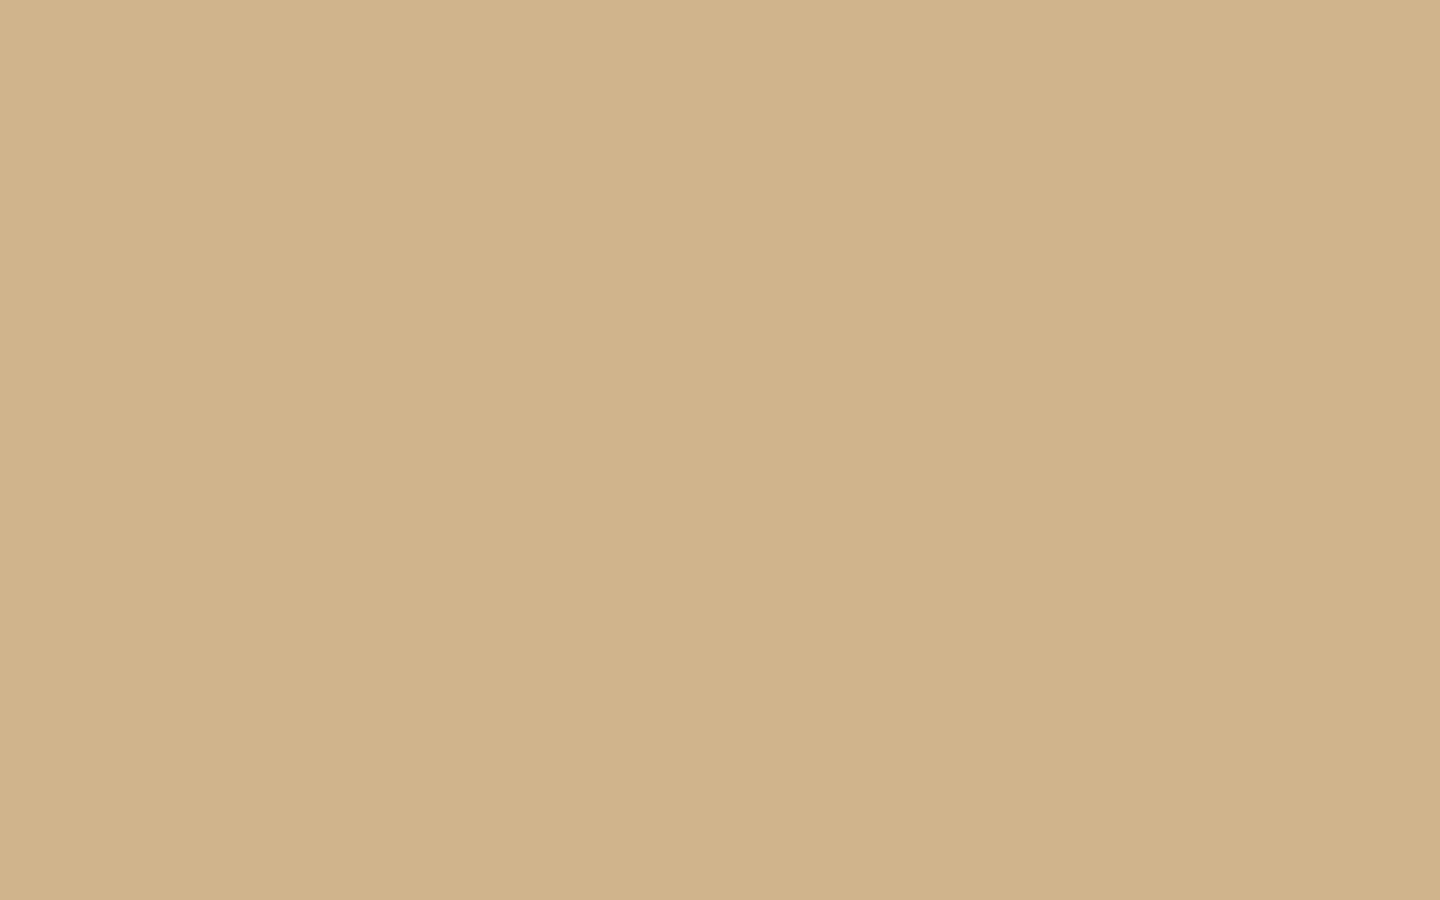 1440x900 Tan Solid Color Background